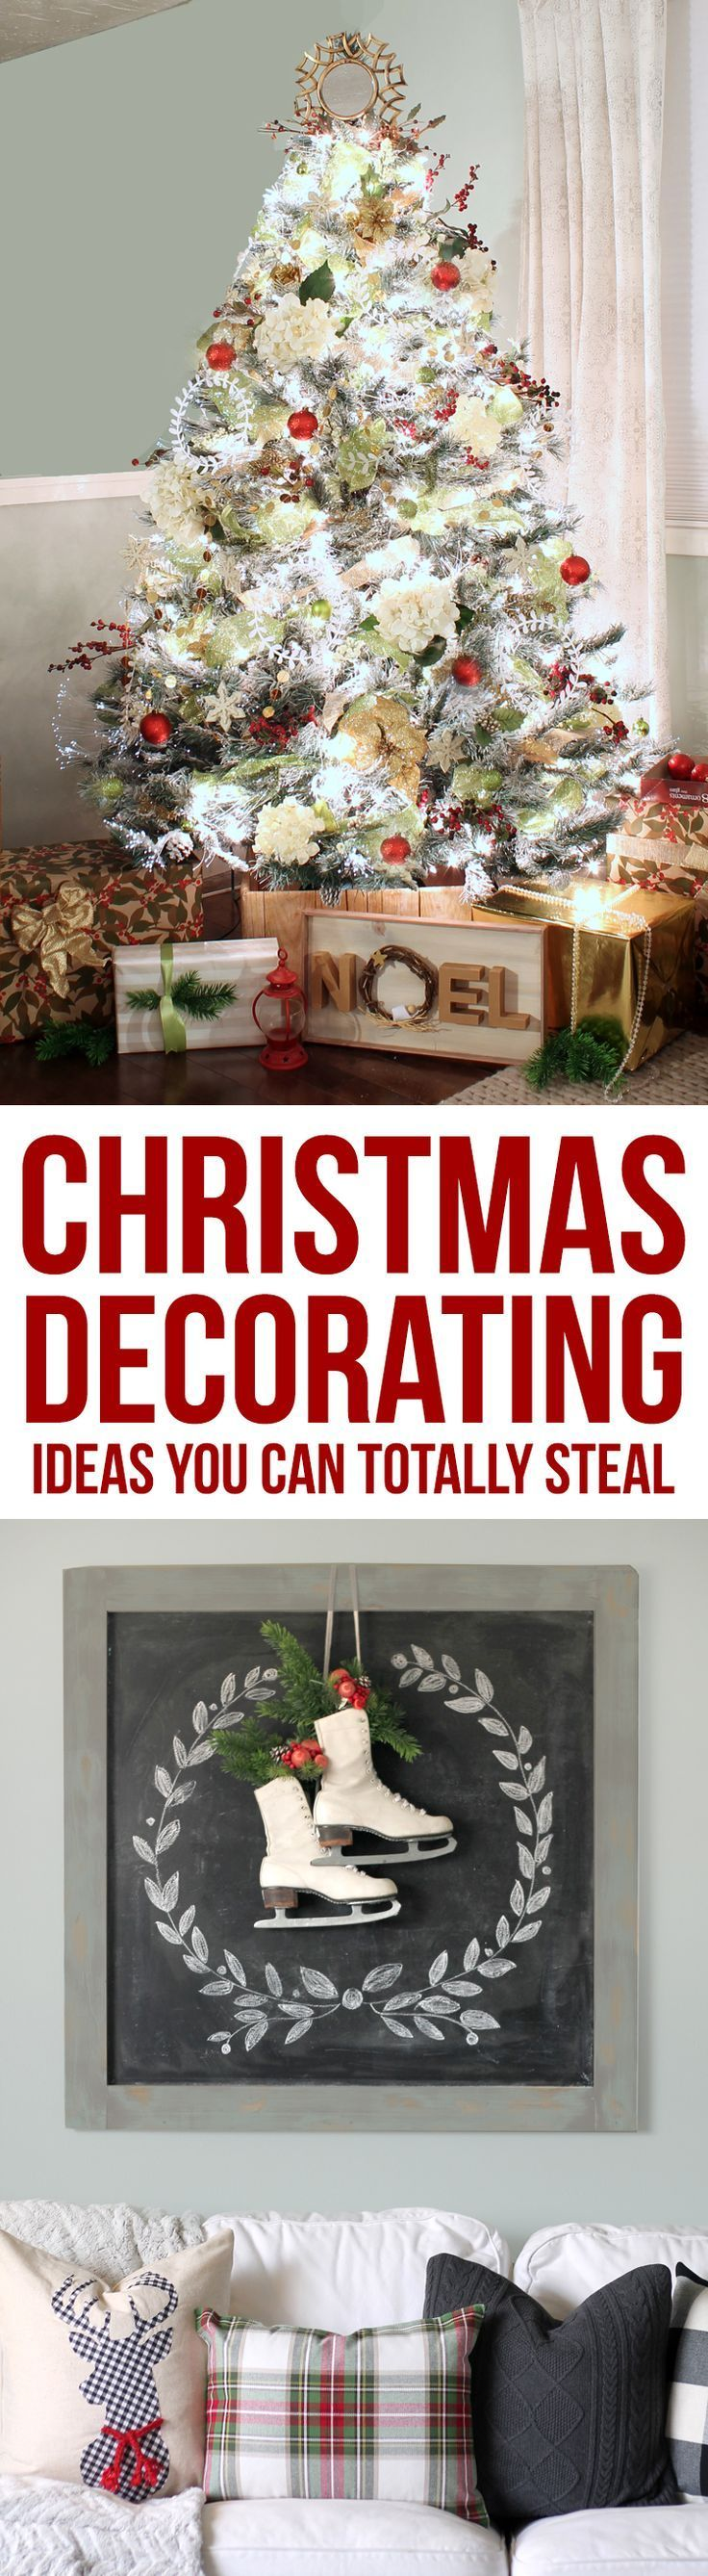 Inexpensive ways to decorate your home for Christmas. Such cute ideas for the holidays! #christmas Farmhouse Christmas decor ideas